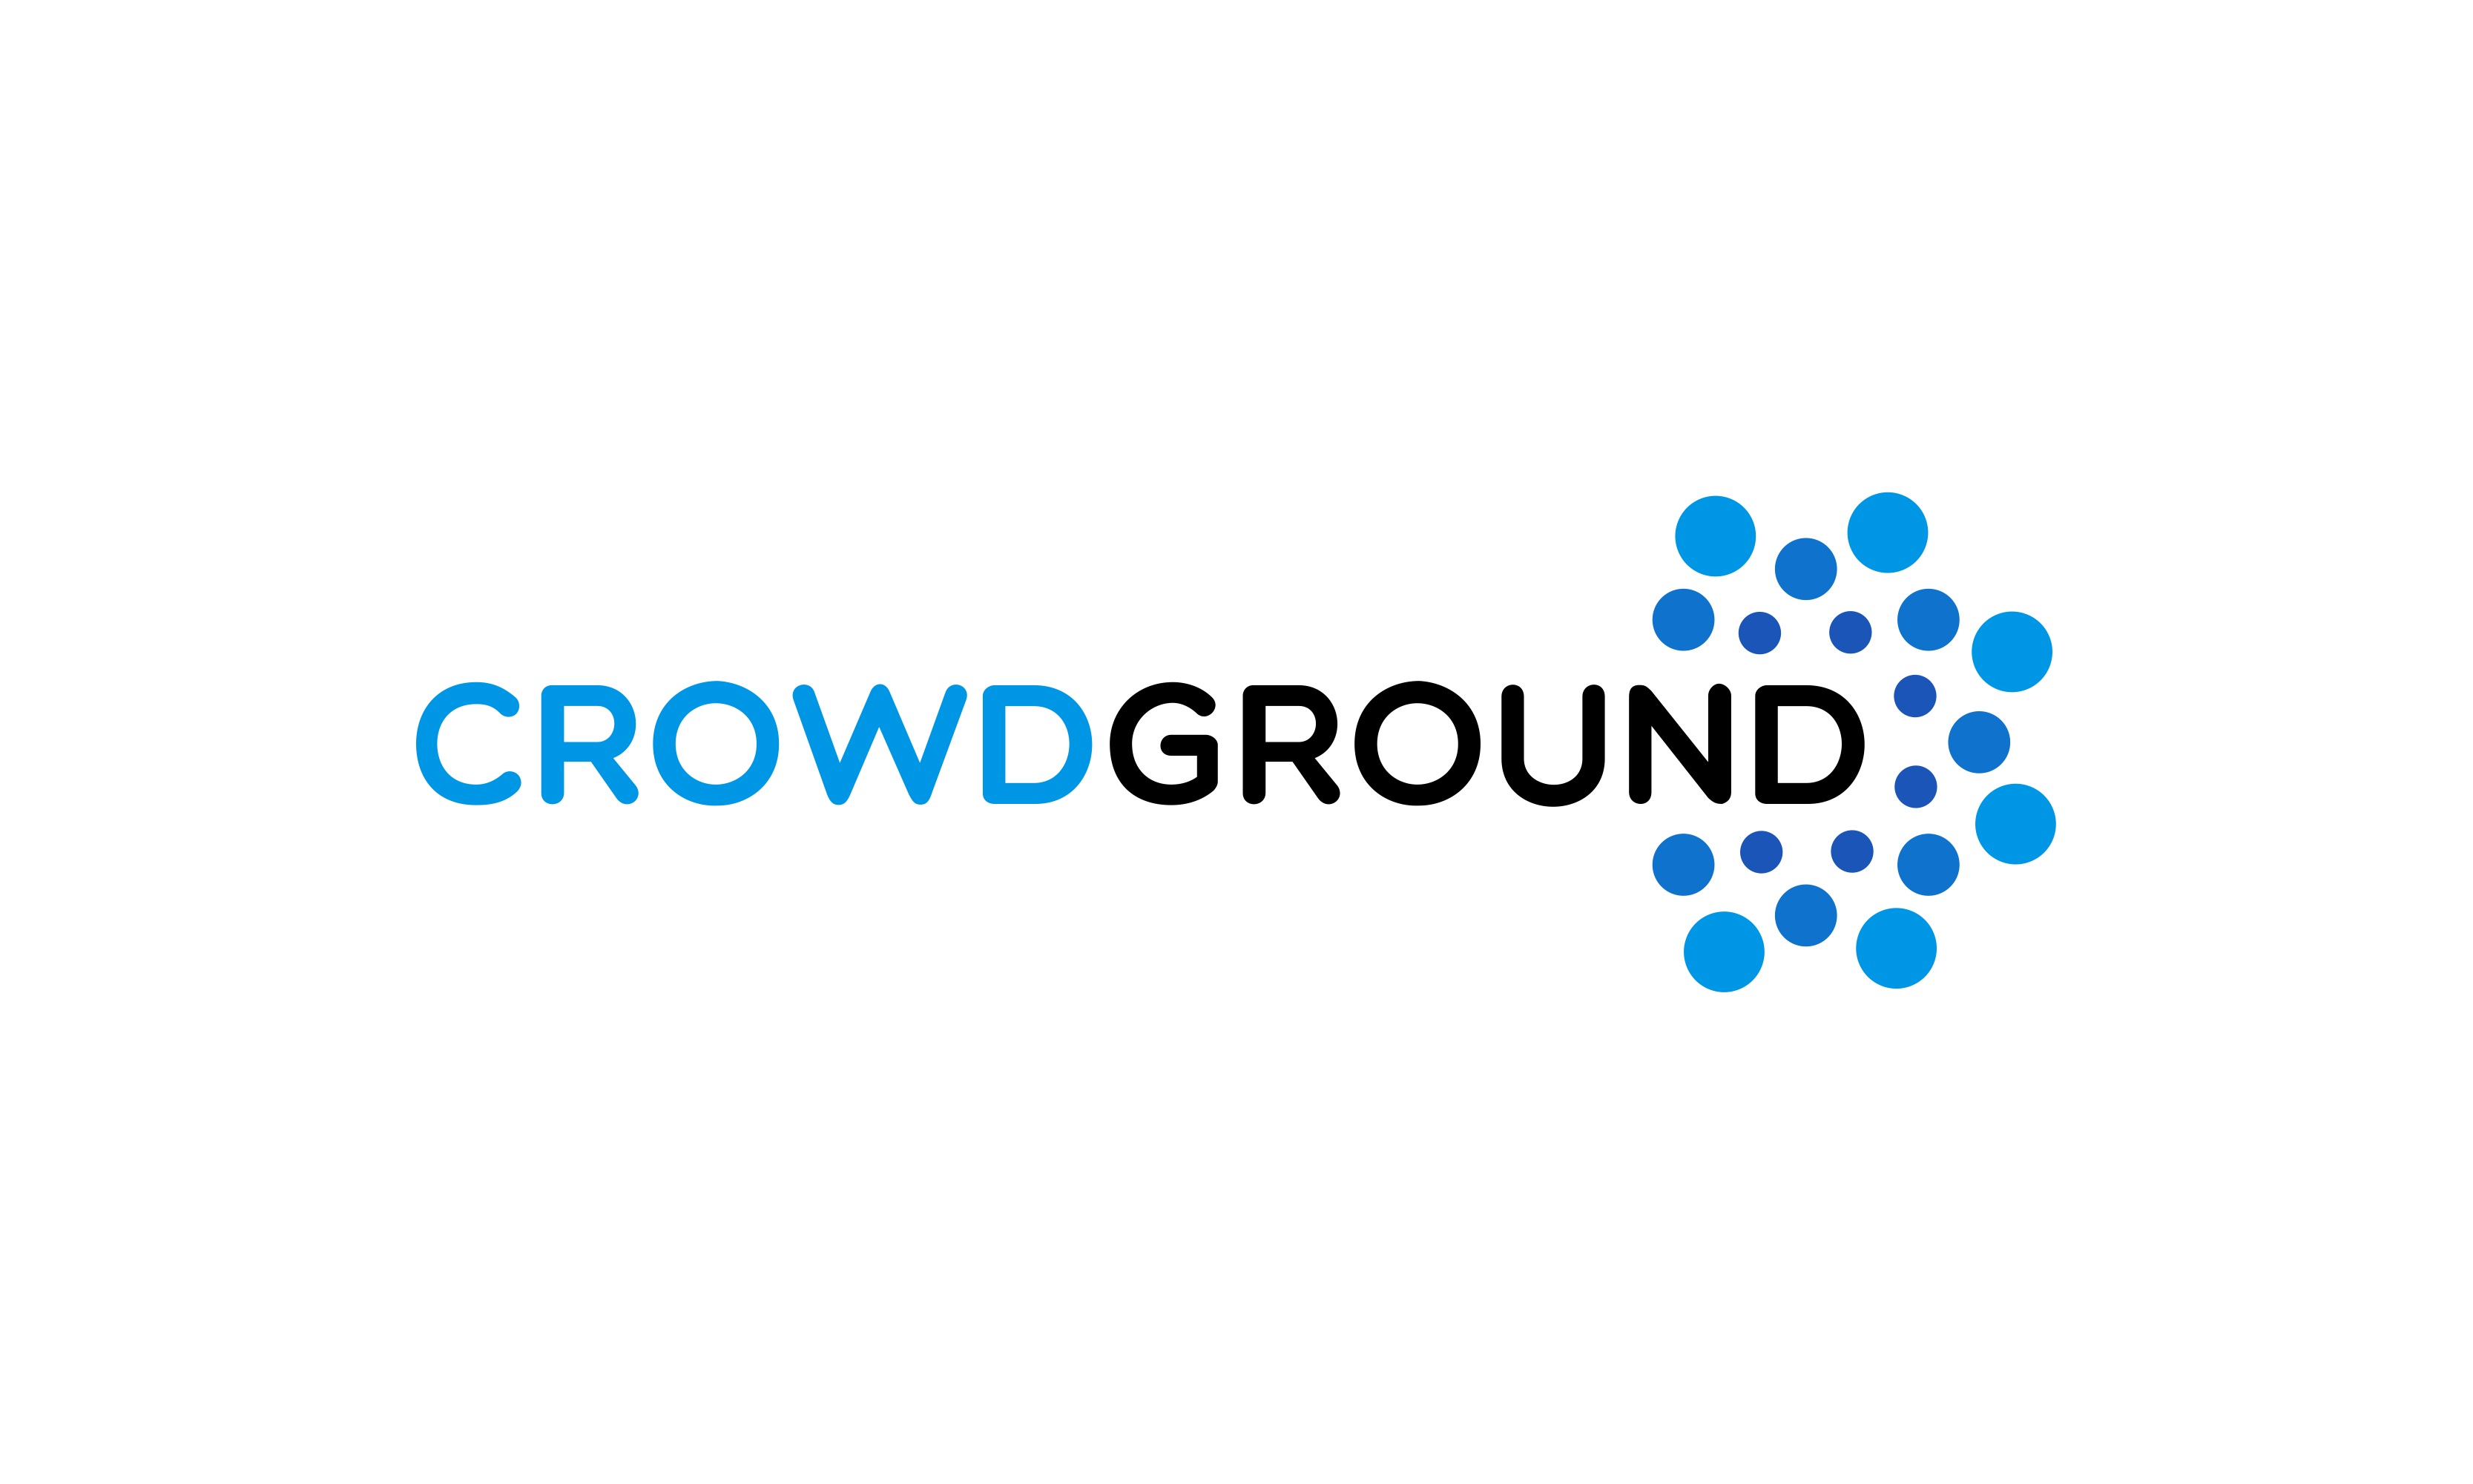 Crowdground